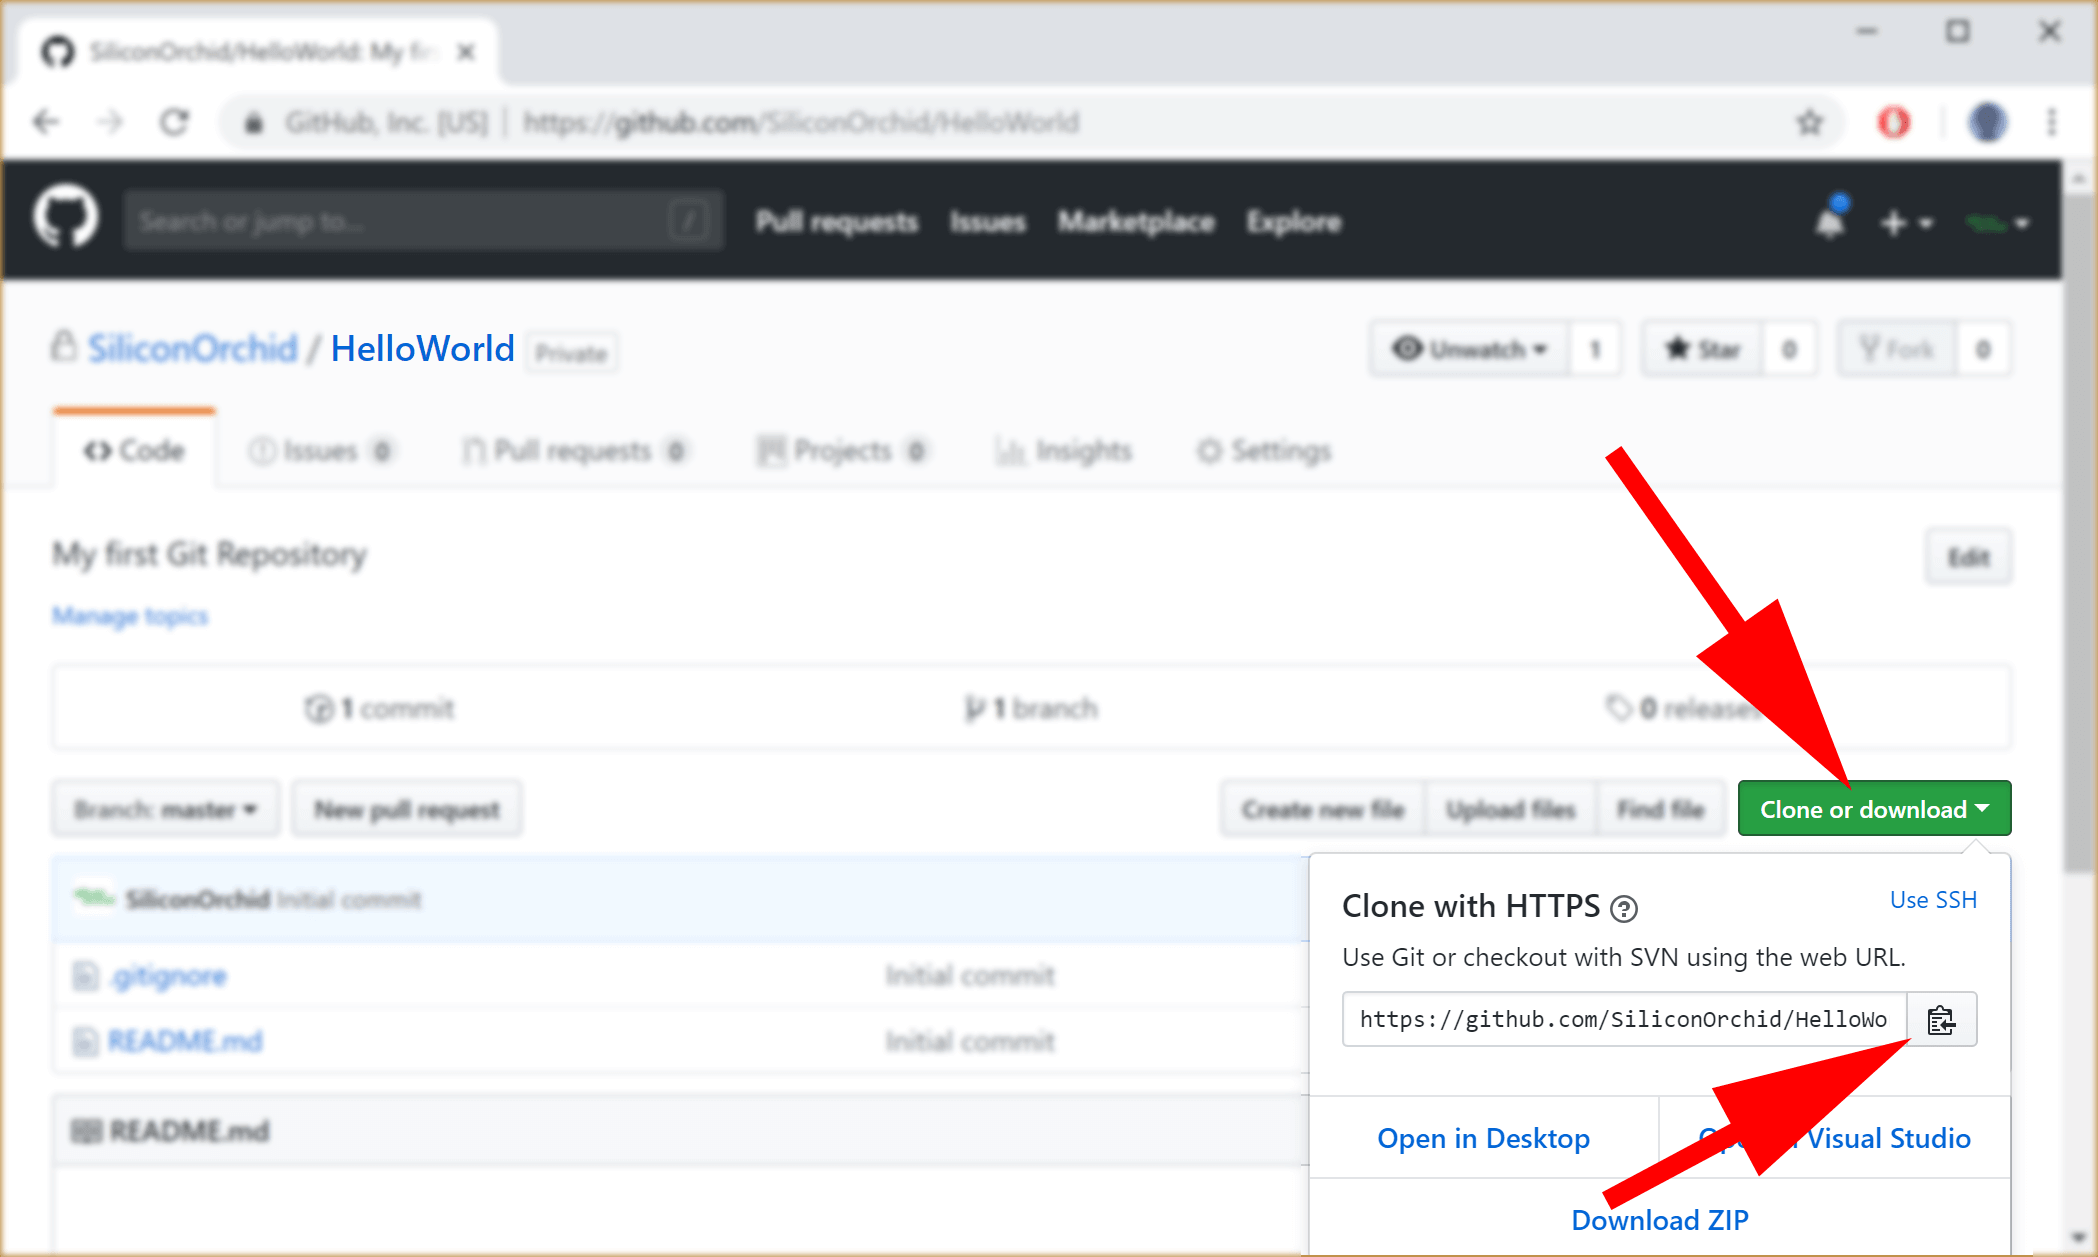 image showing GitHub clone buttons